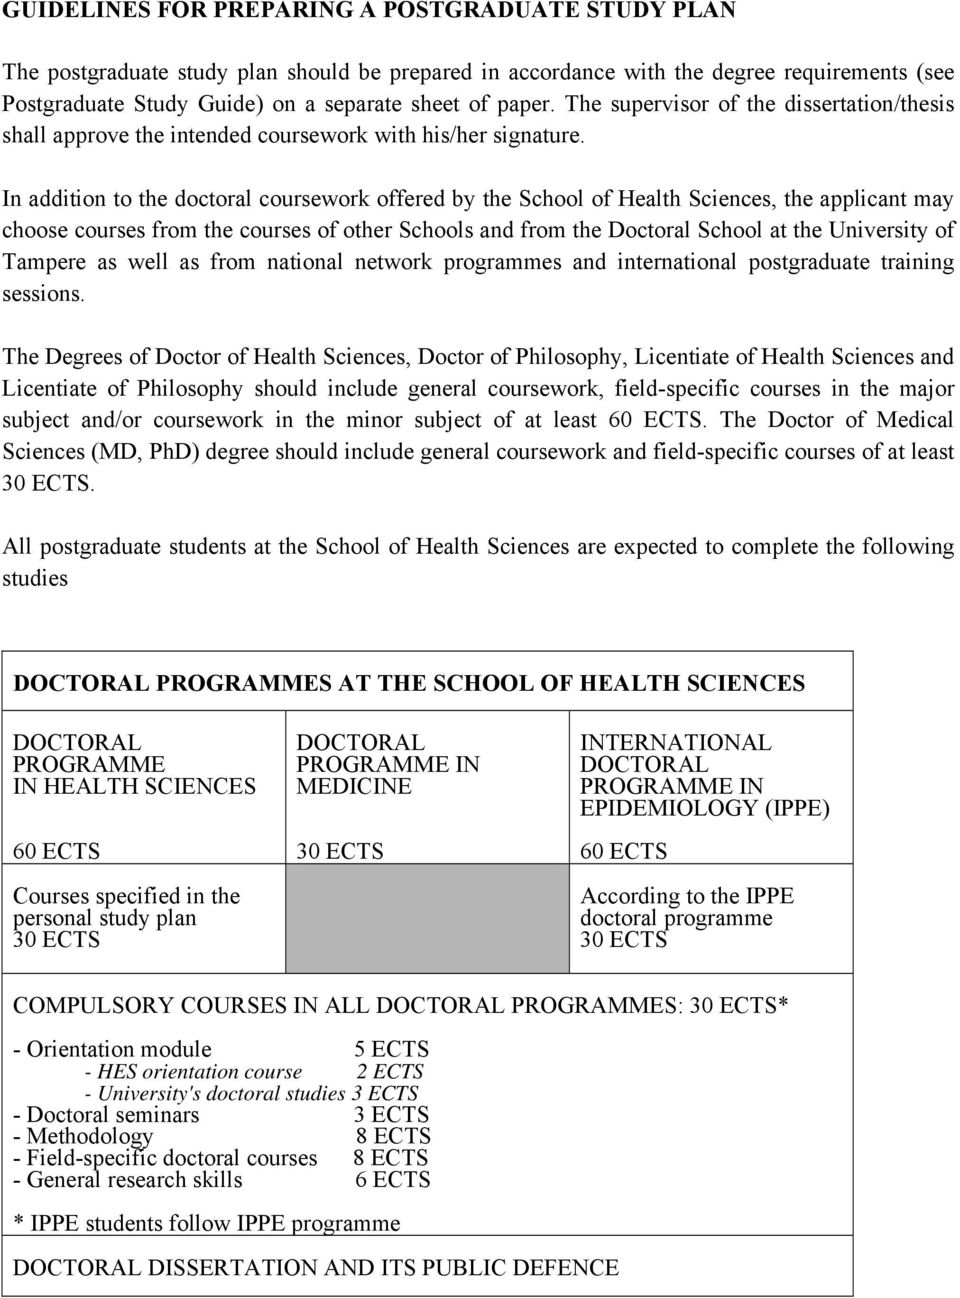 In addition to the doctoral coursework offered by the School of Health Sciences, the applicant may choose courses from the courses of other Schools and from the Doctoral School at the University of